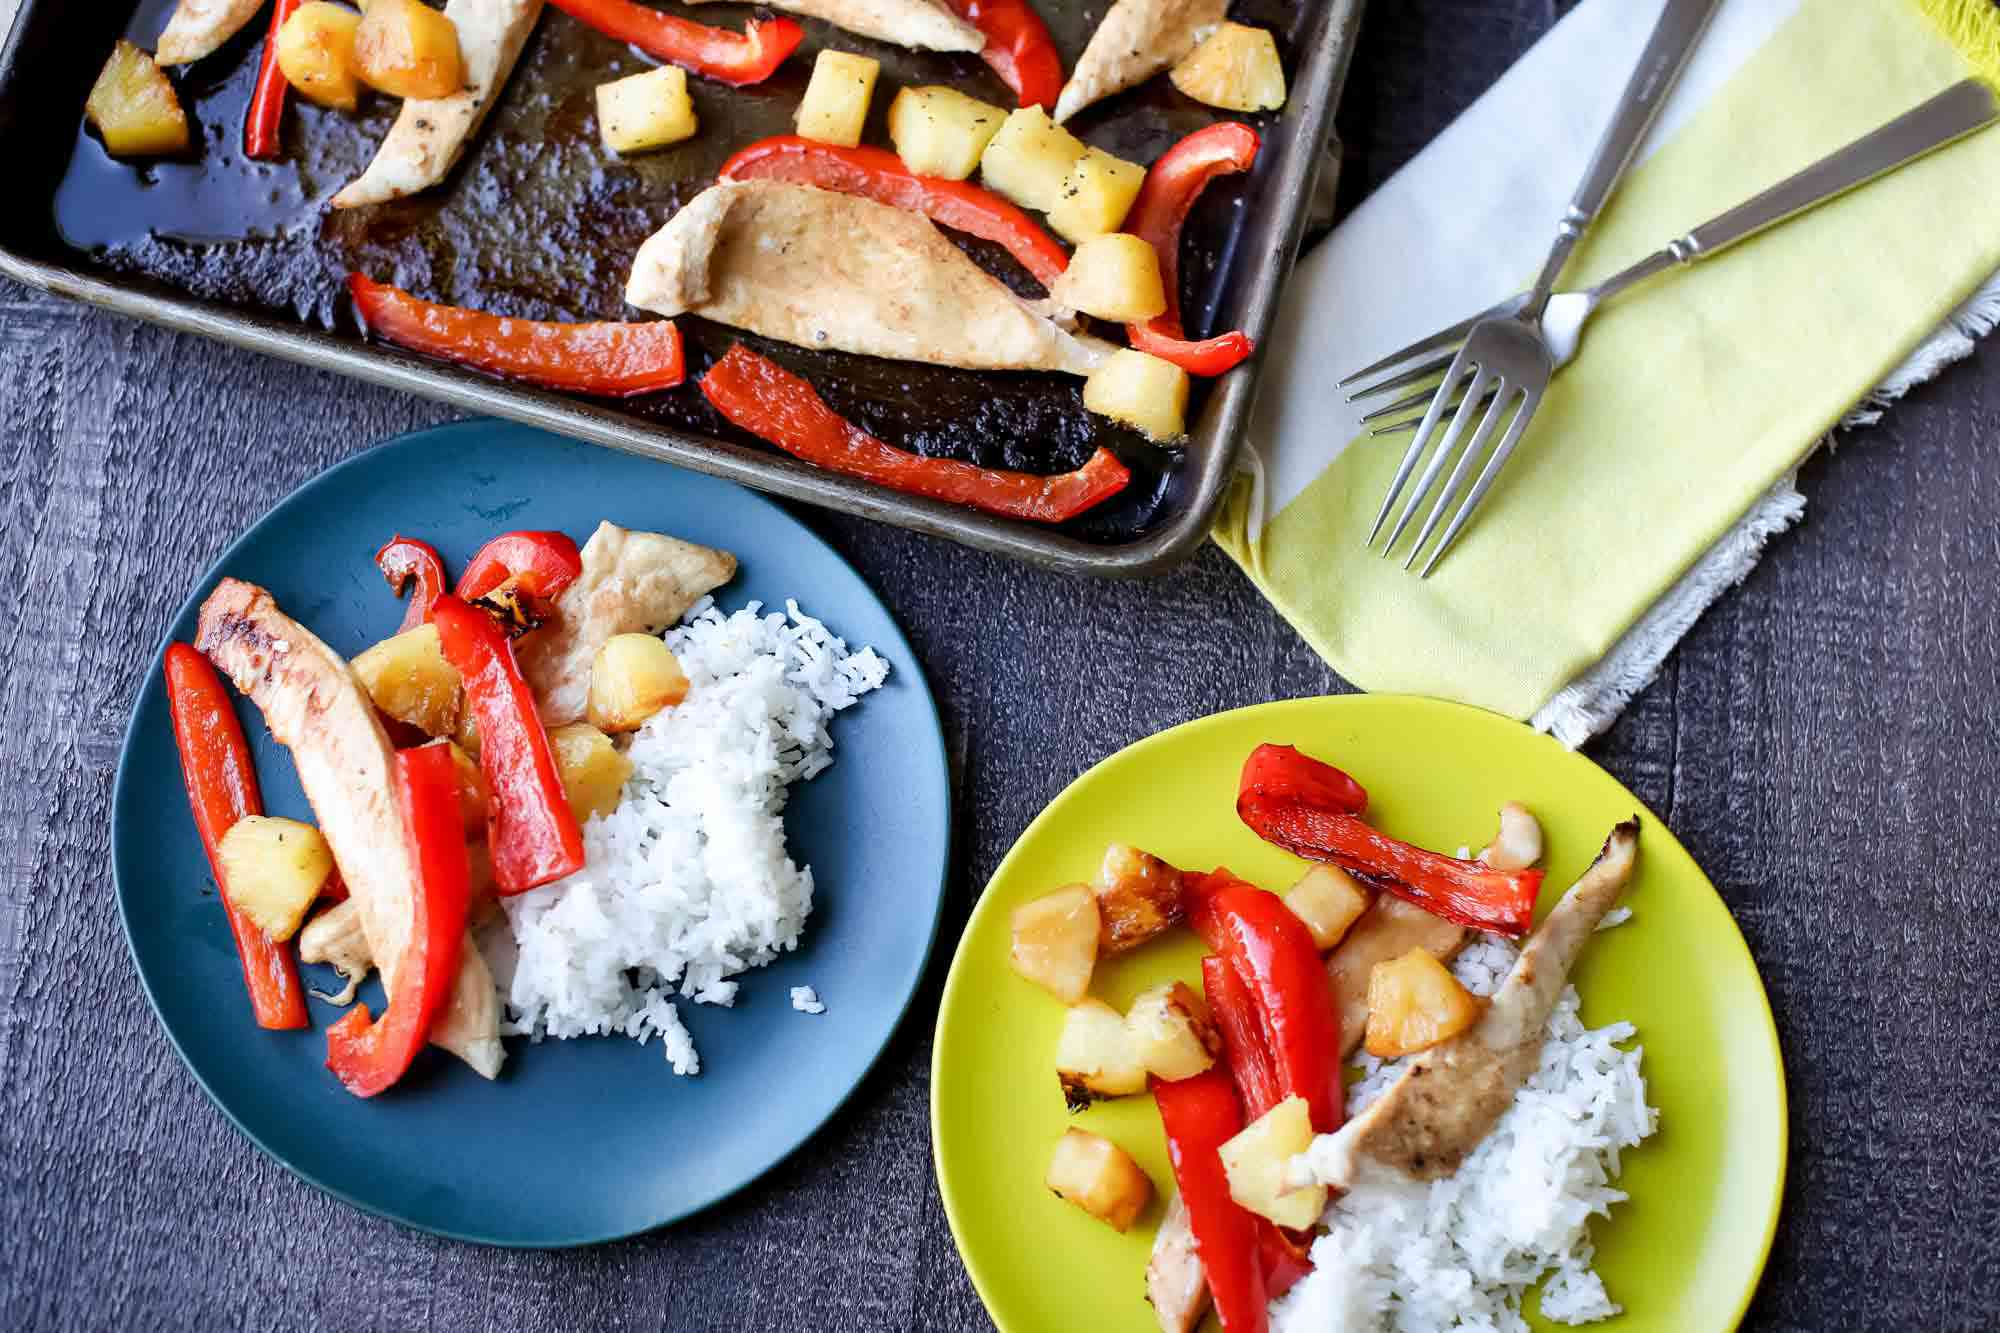 Chicken with Peppers and Pineapple serve the chicken